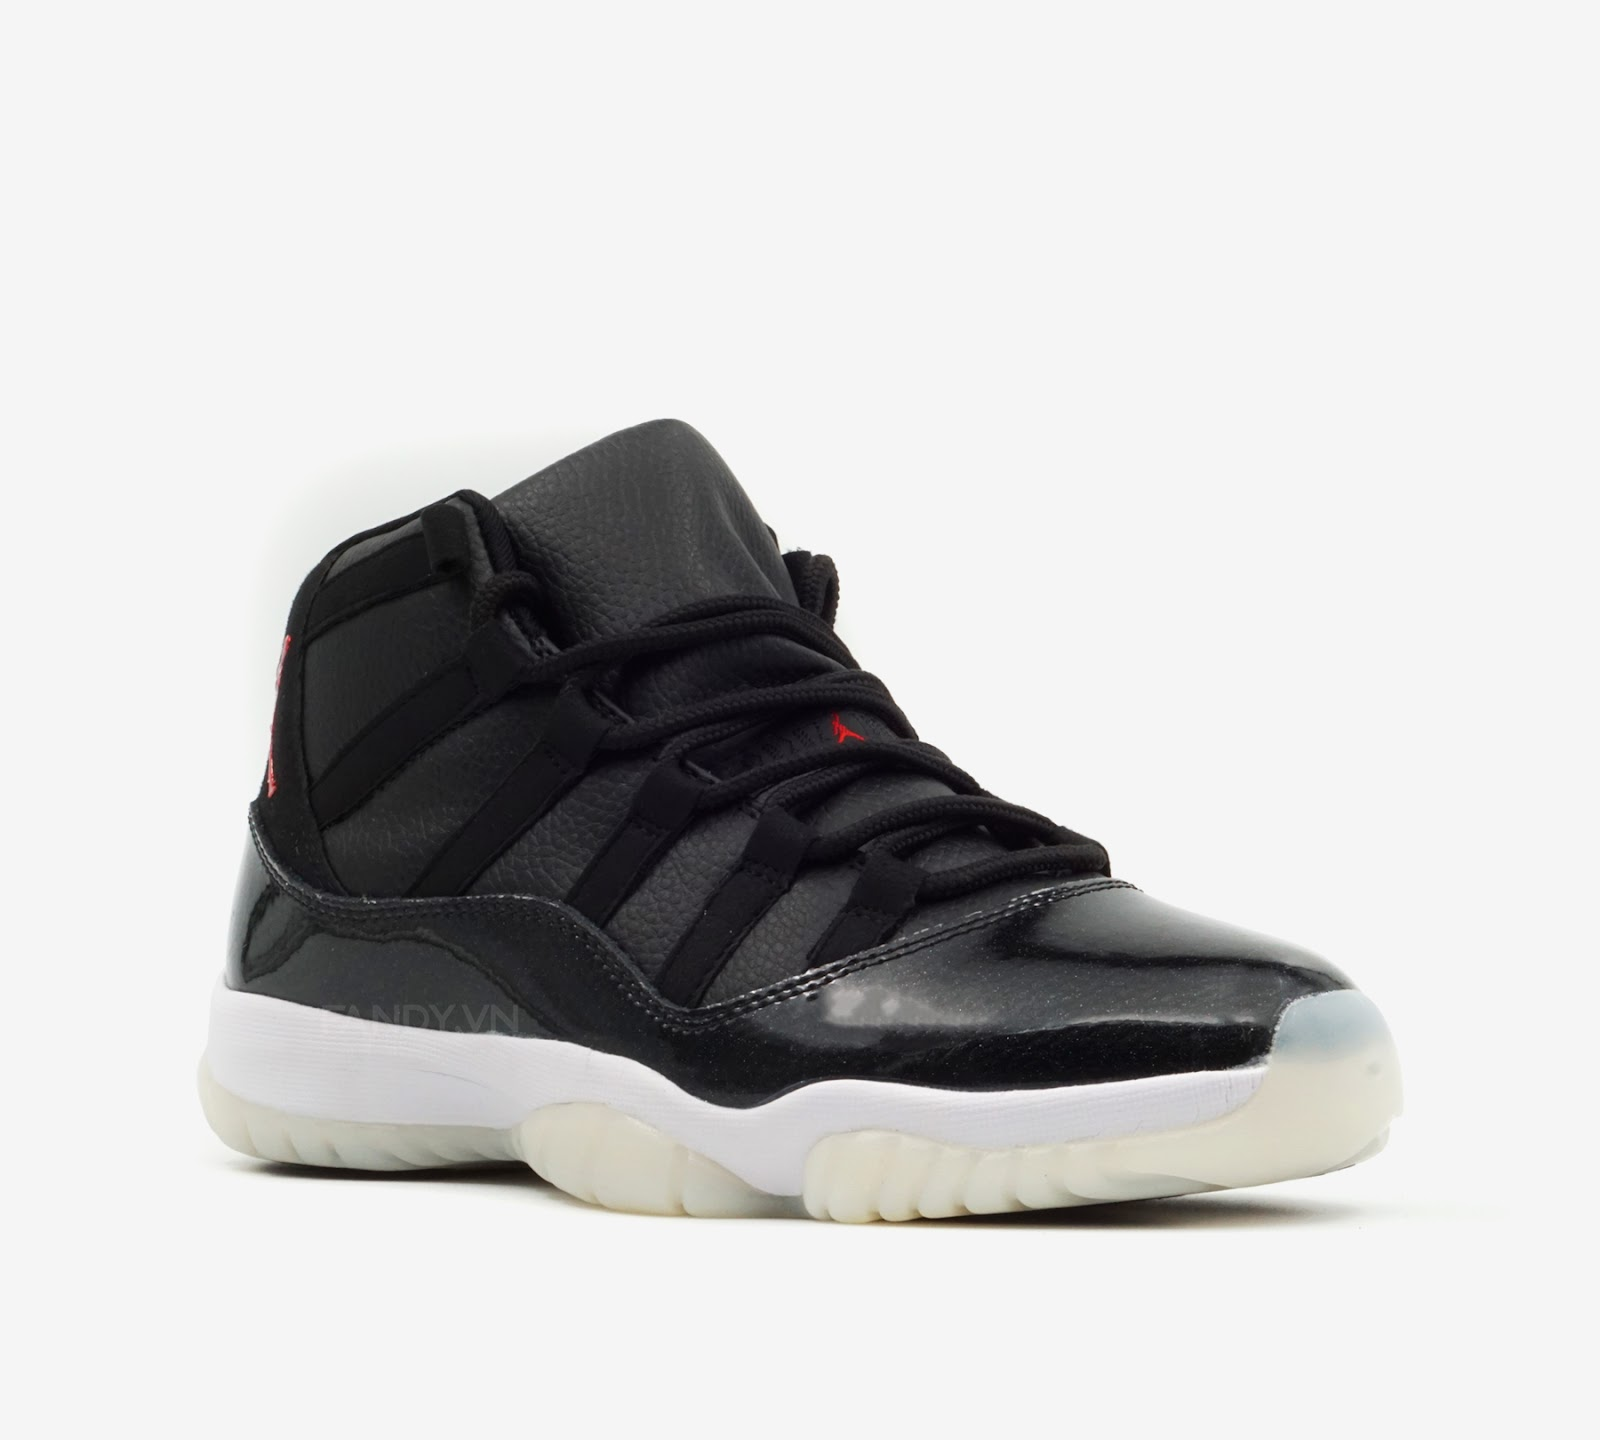 Giày Nike Air Jordan 11 Retro  72-10  Black/Gym Red-White